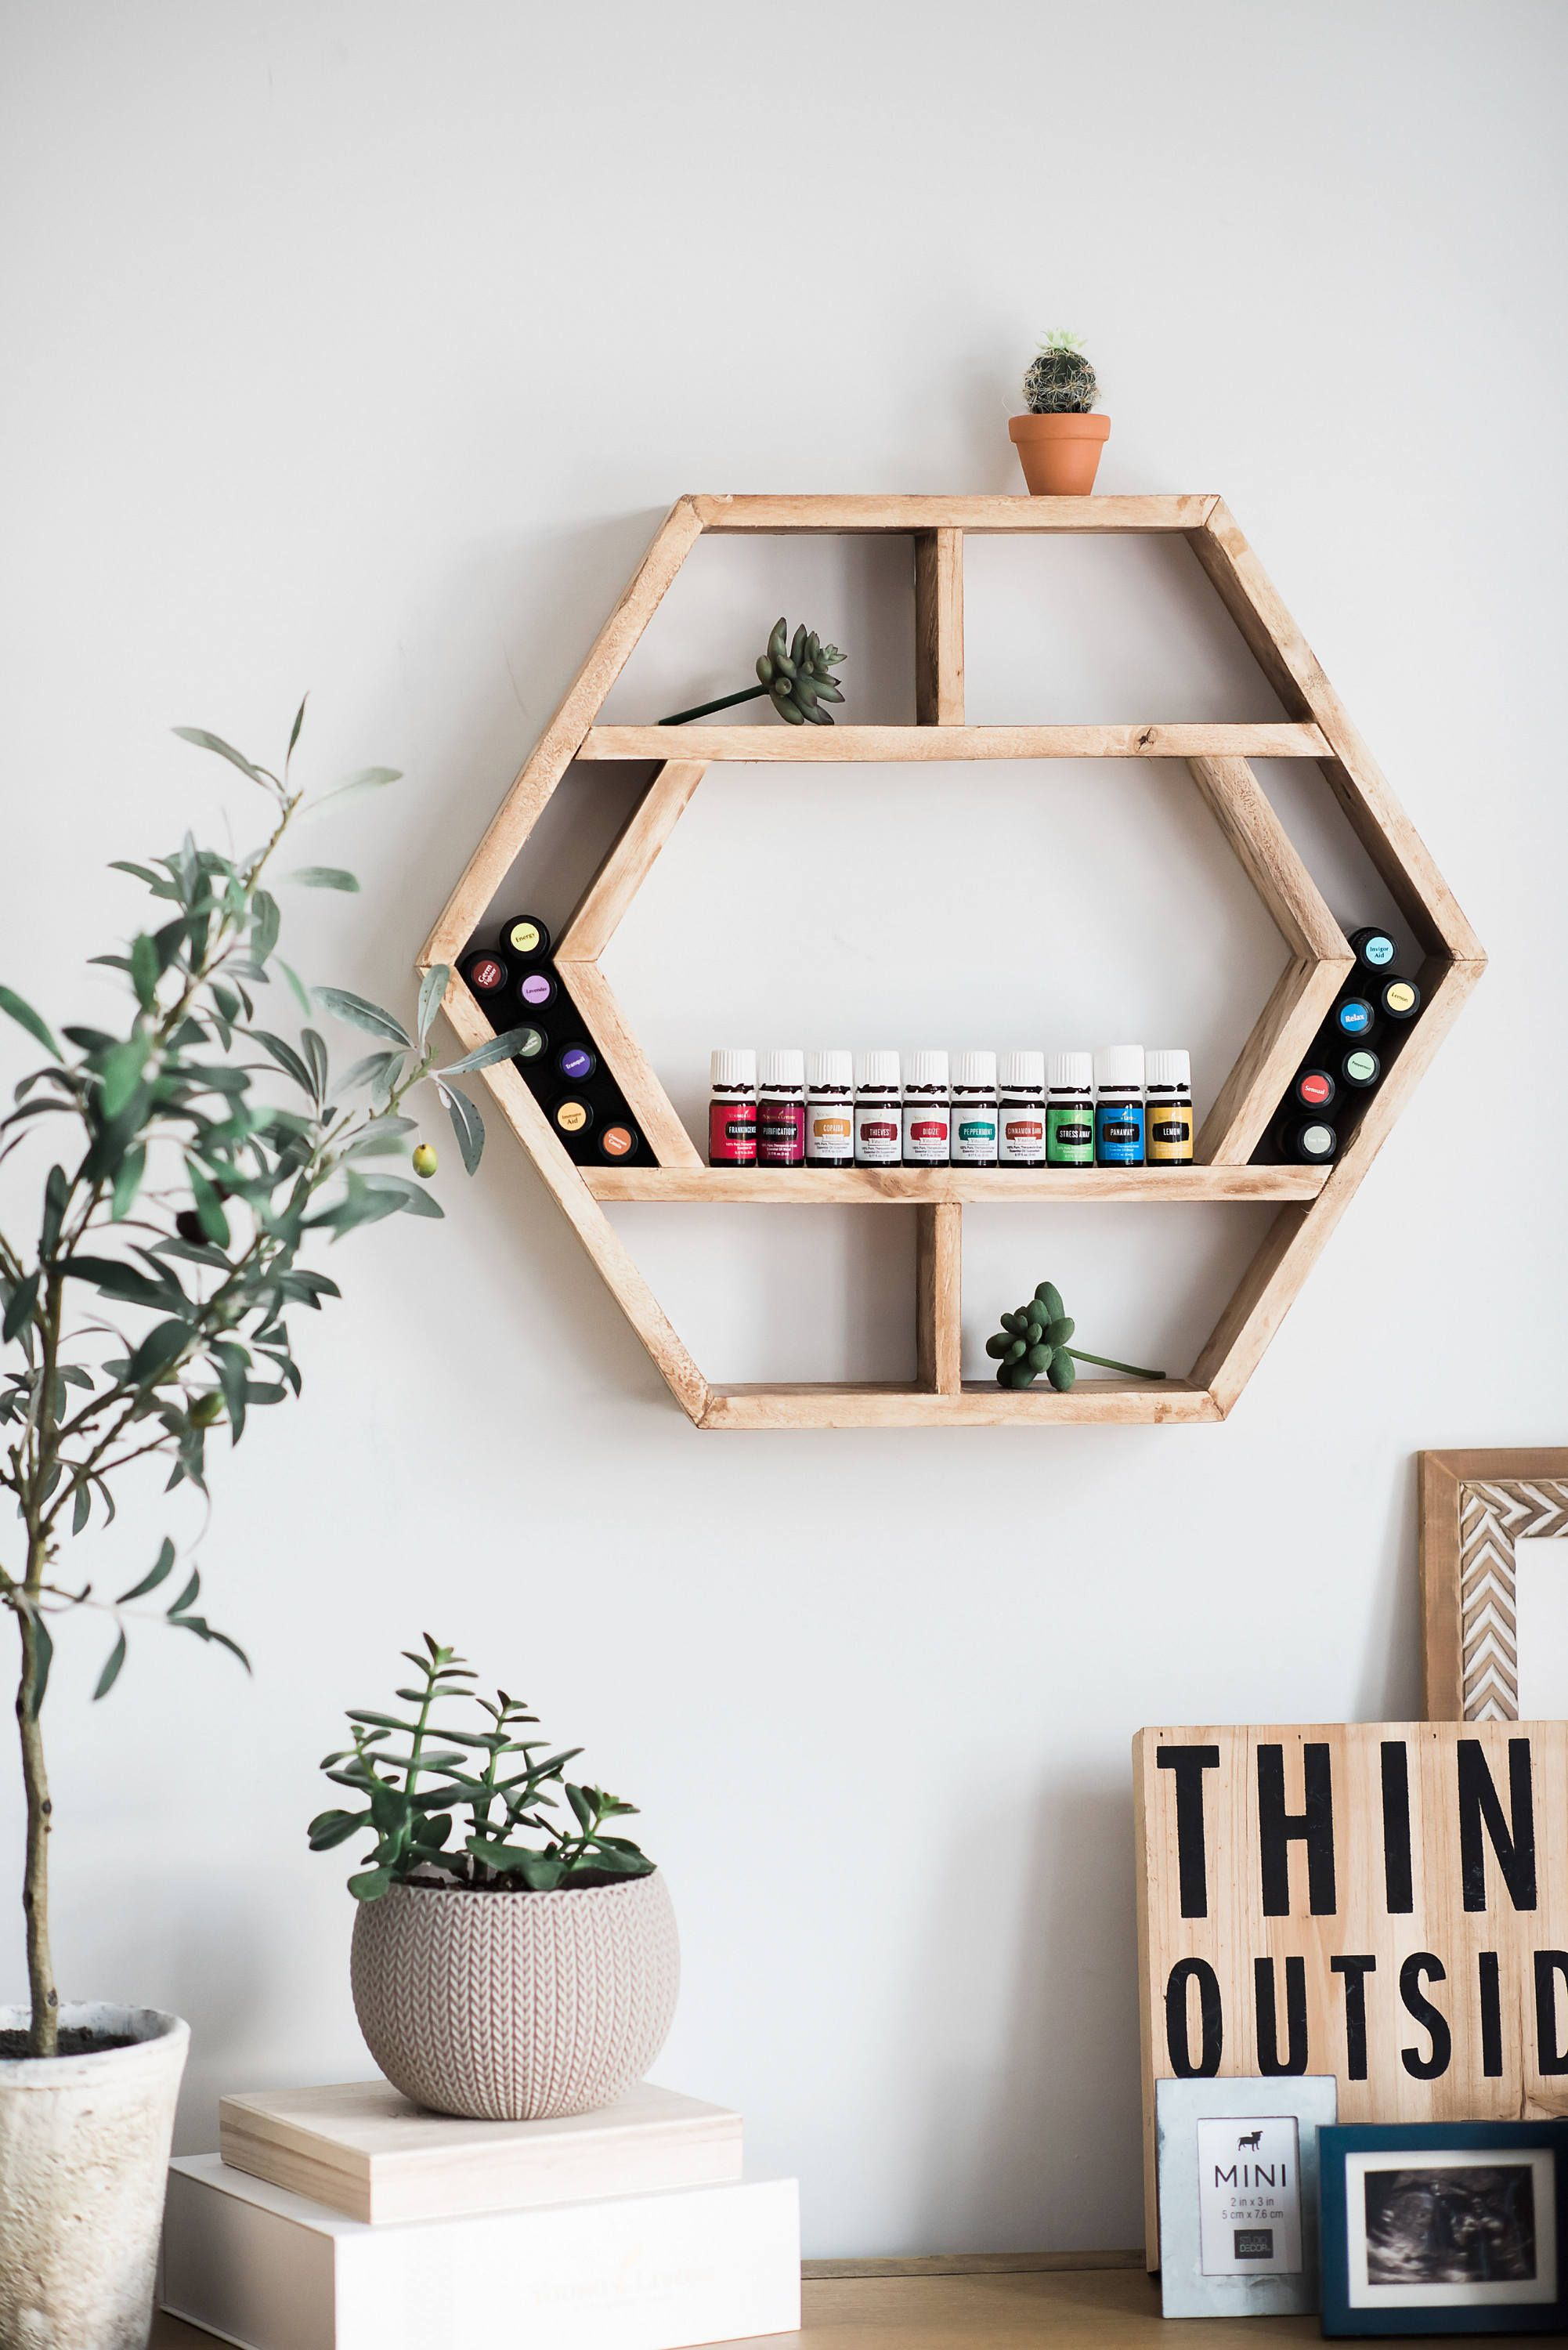 Essential Oil Storage Essential Oil Shelf Essential Oil Holder Wall Decor Floating Shelf Home Decor Hexagon Wood Shelf Geometric Oil Floating Shelves Diy Floating Shelves Essential Oil Holder